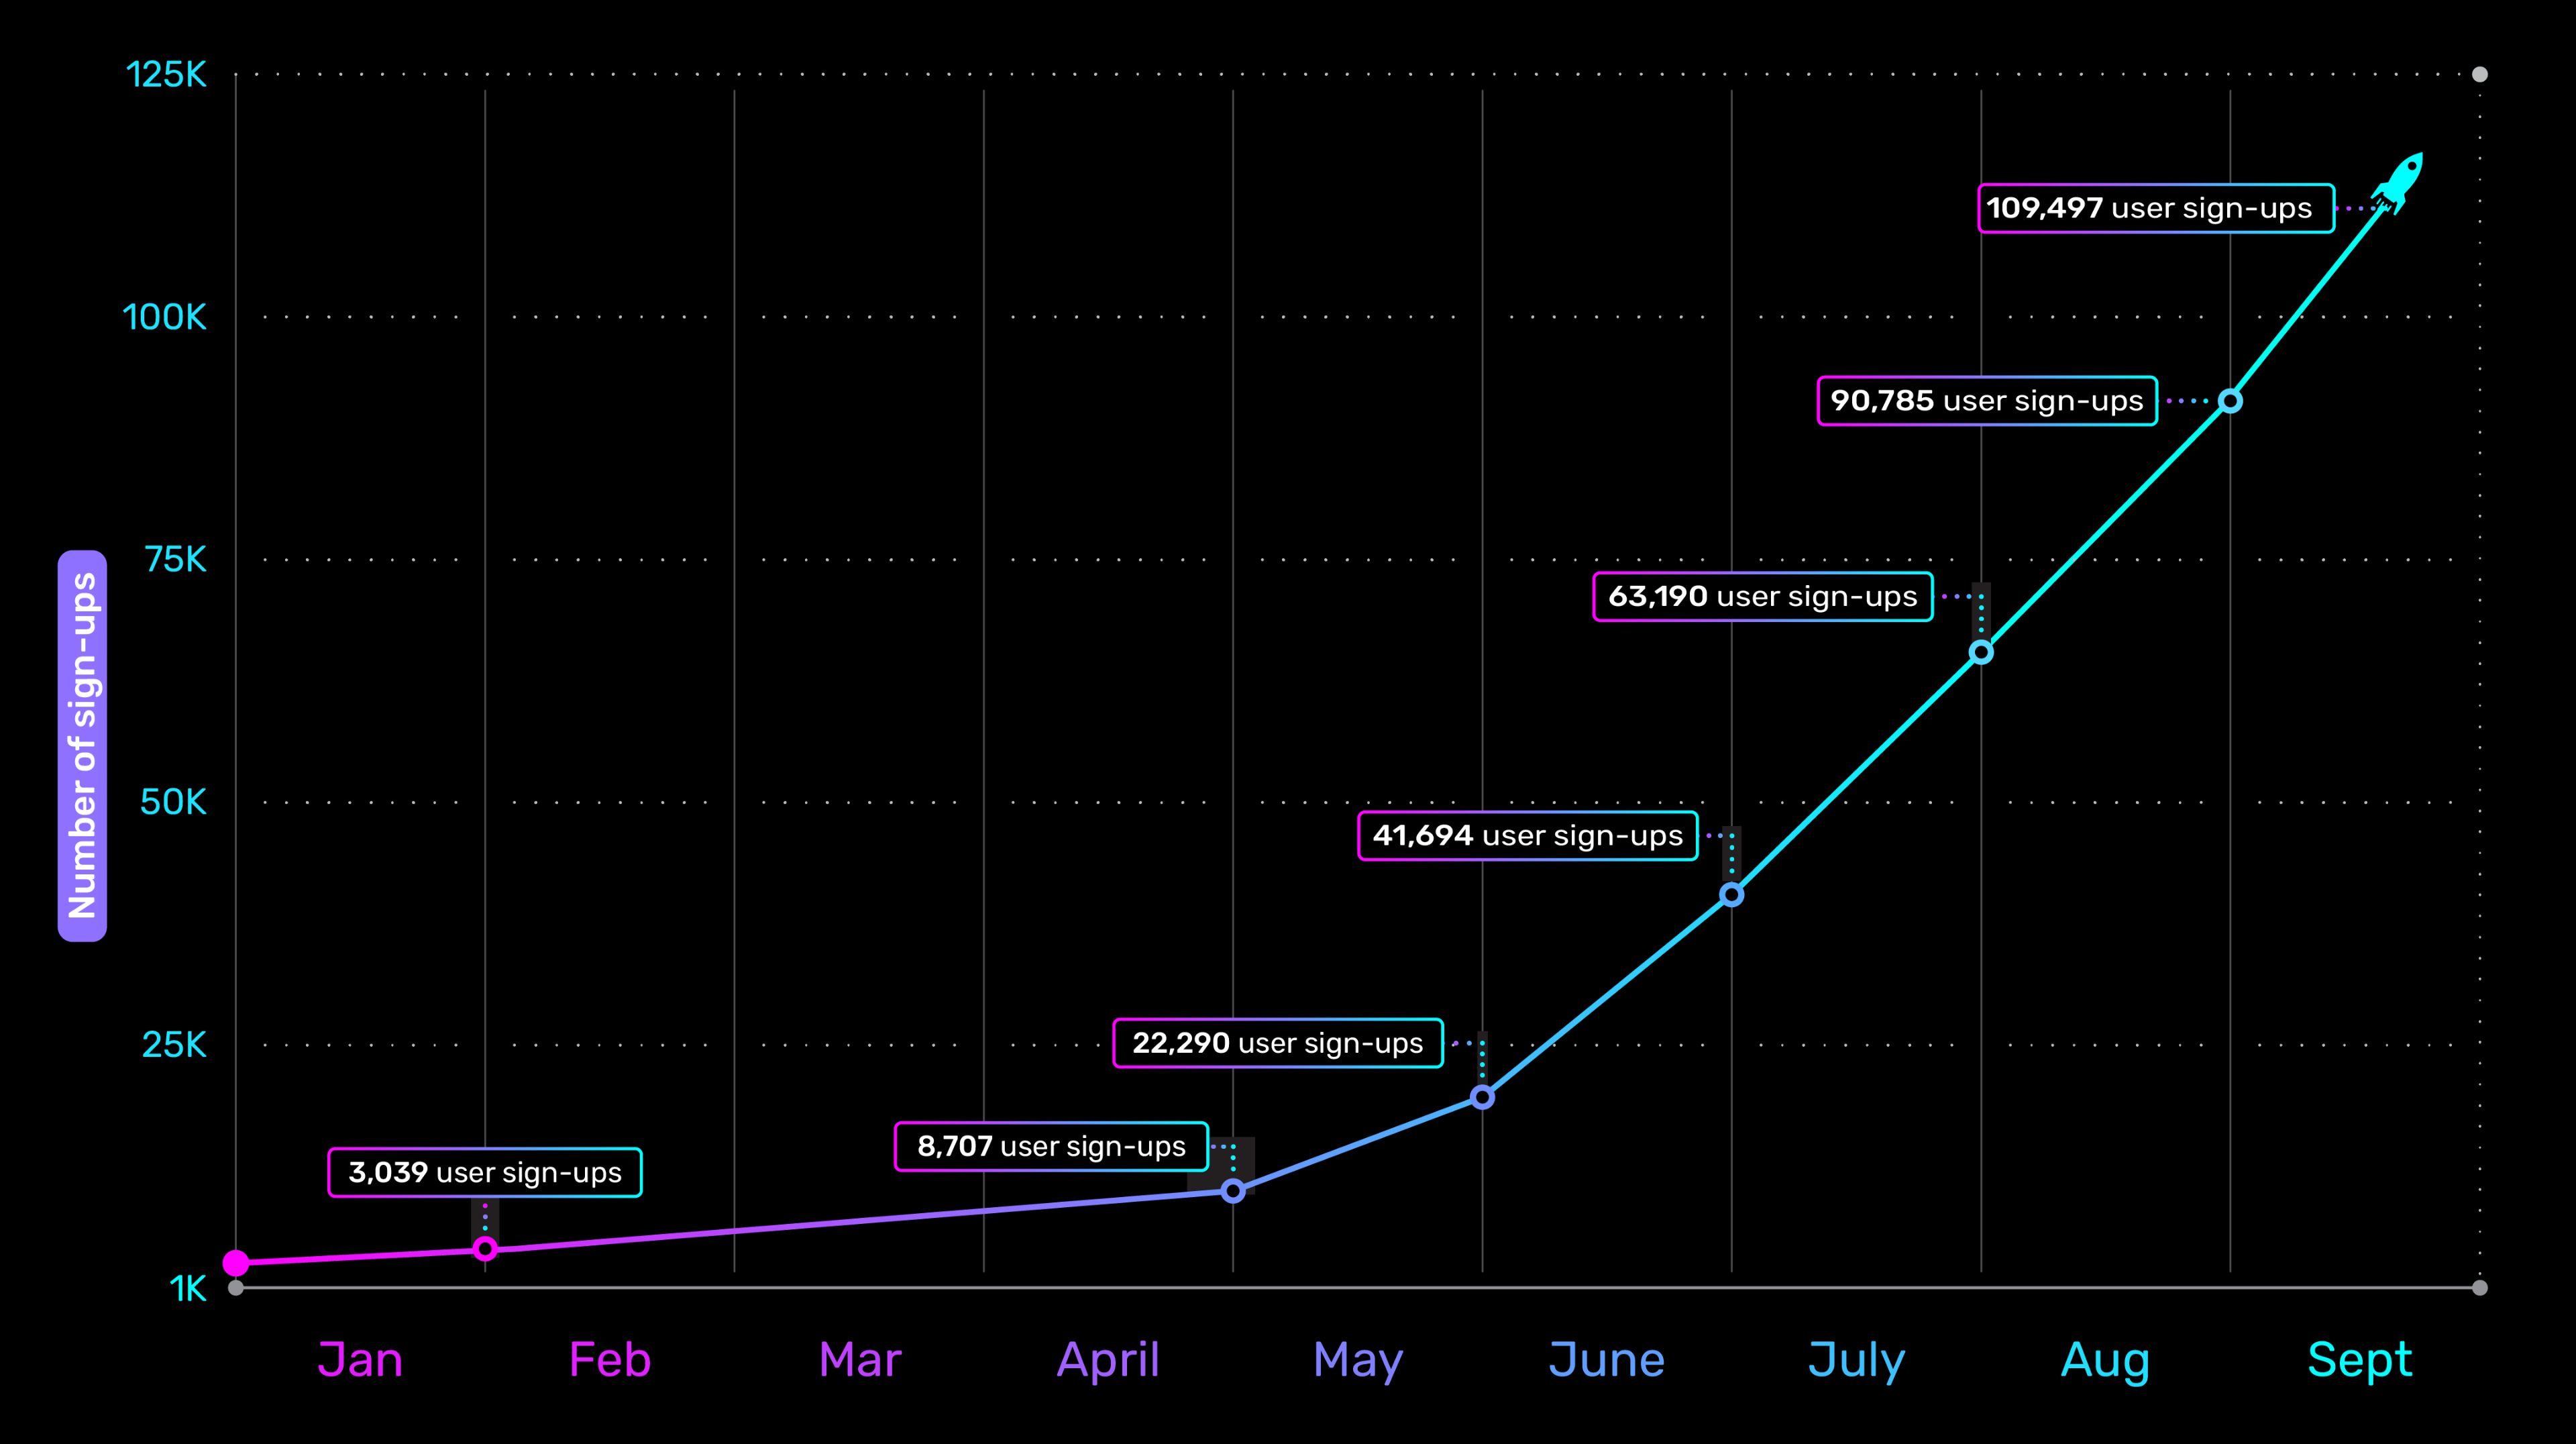 Our public beta sign-ups increased by 67,803 this quarter!